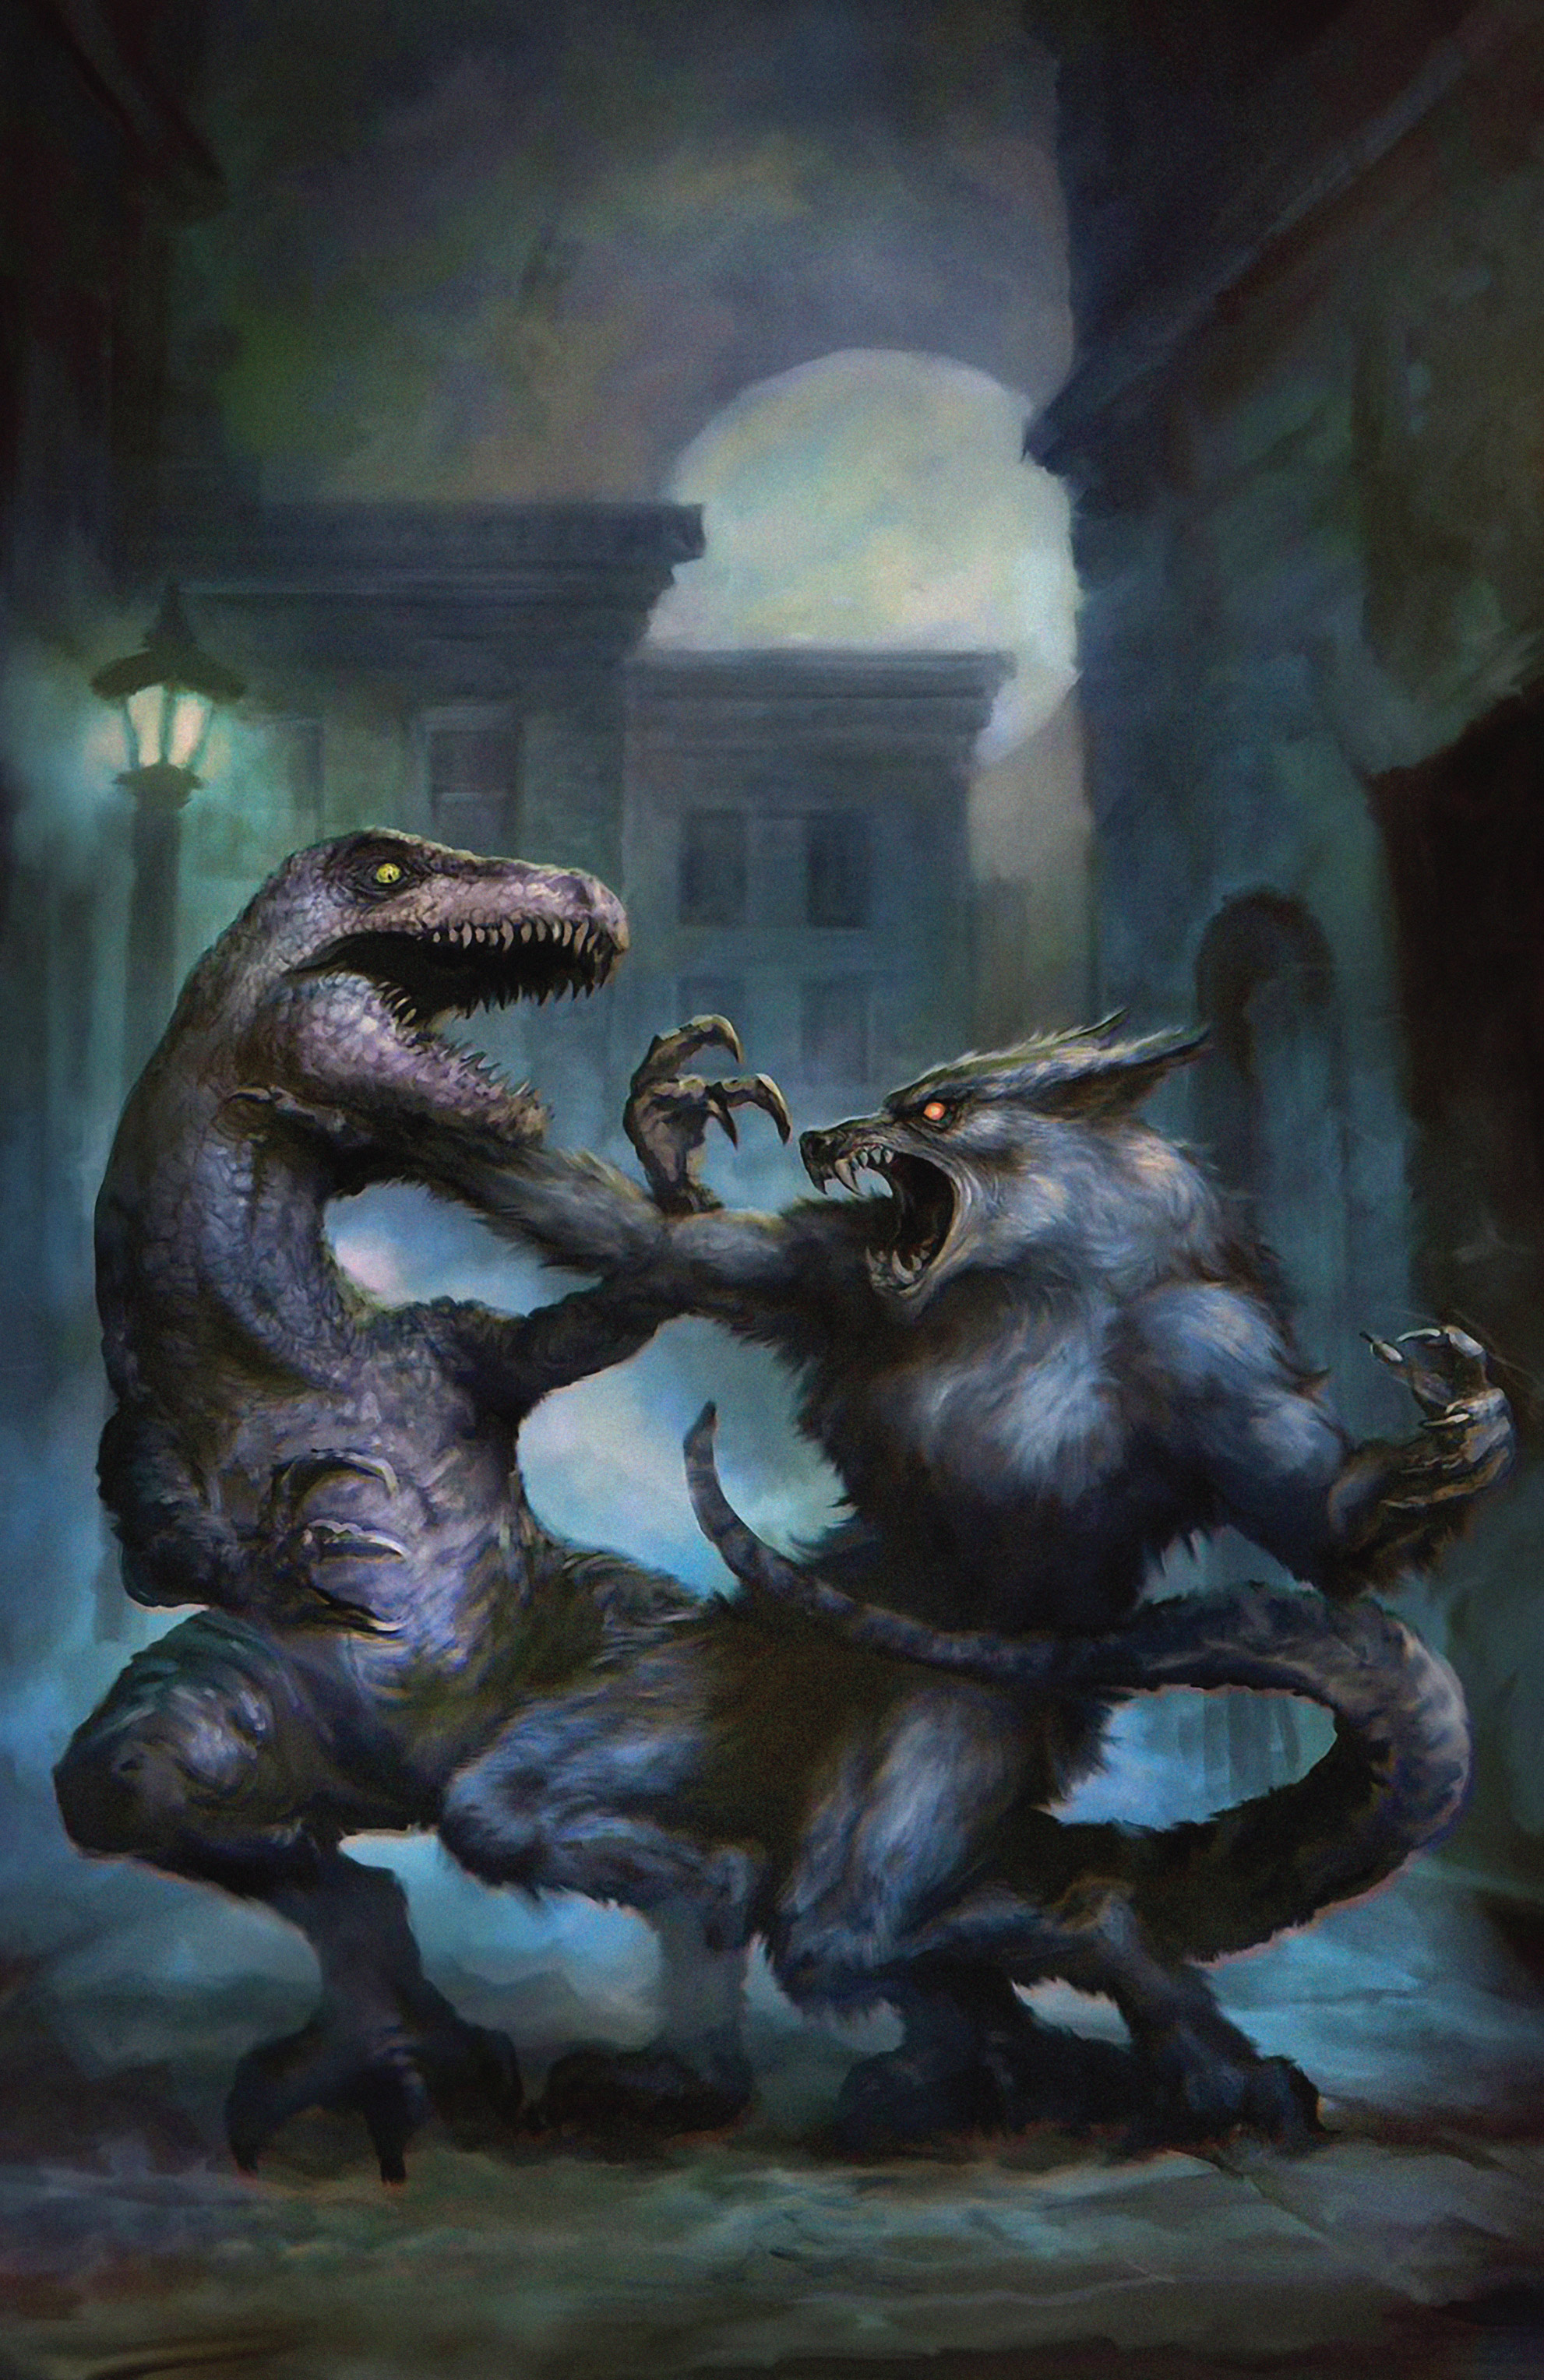 Read online American Mythology Dark: Werewolves vs Dinosaurs comic -  Issue #2 - 34